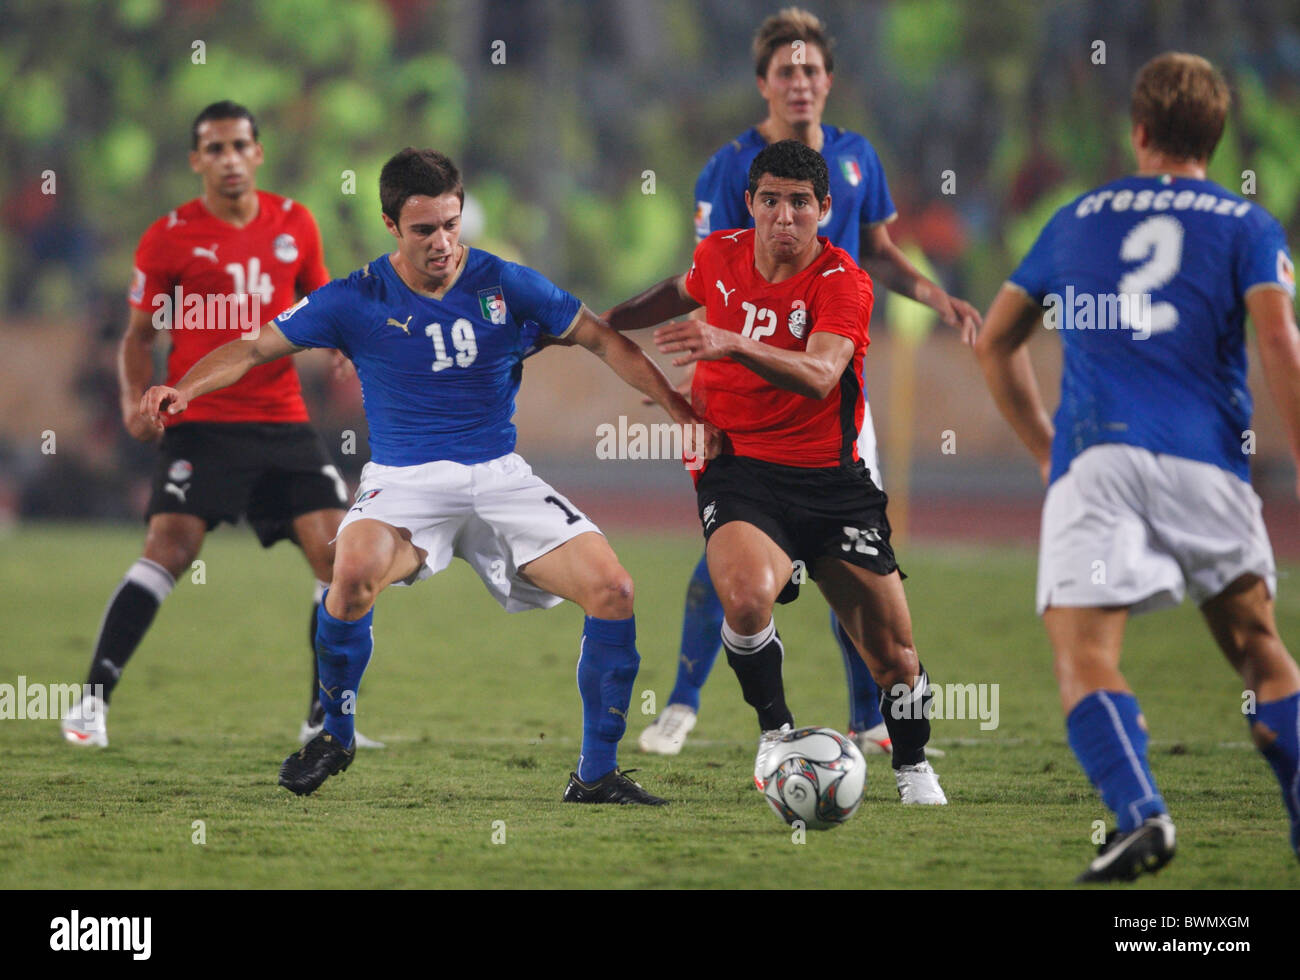 Marco Romizi of Italy (19) and Islam Ramadan of Egypt (12) vie for the ball during a 2009 FIFA U-20 World Cup Group - Stock Image